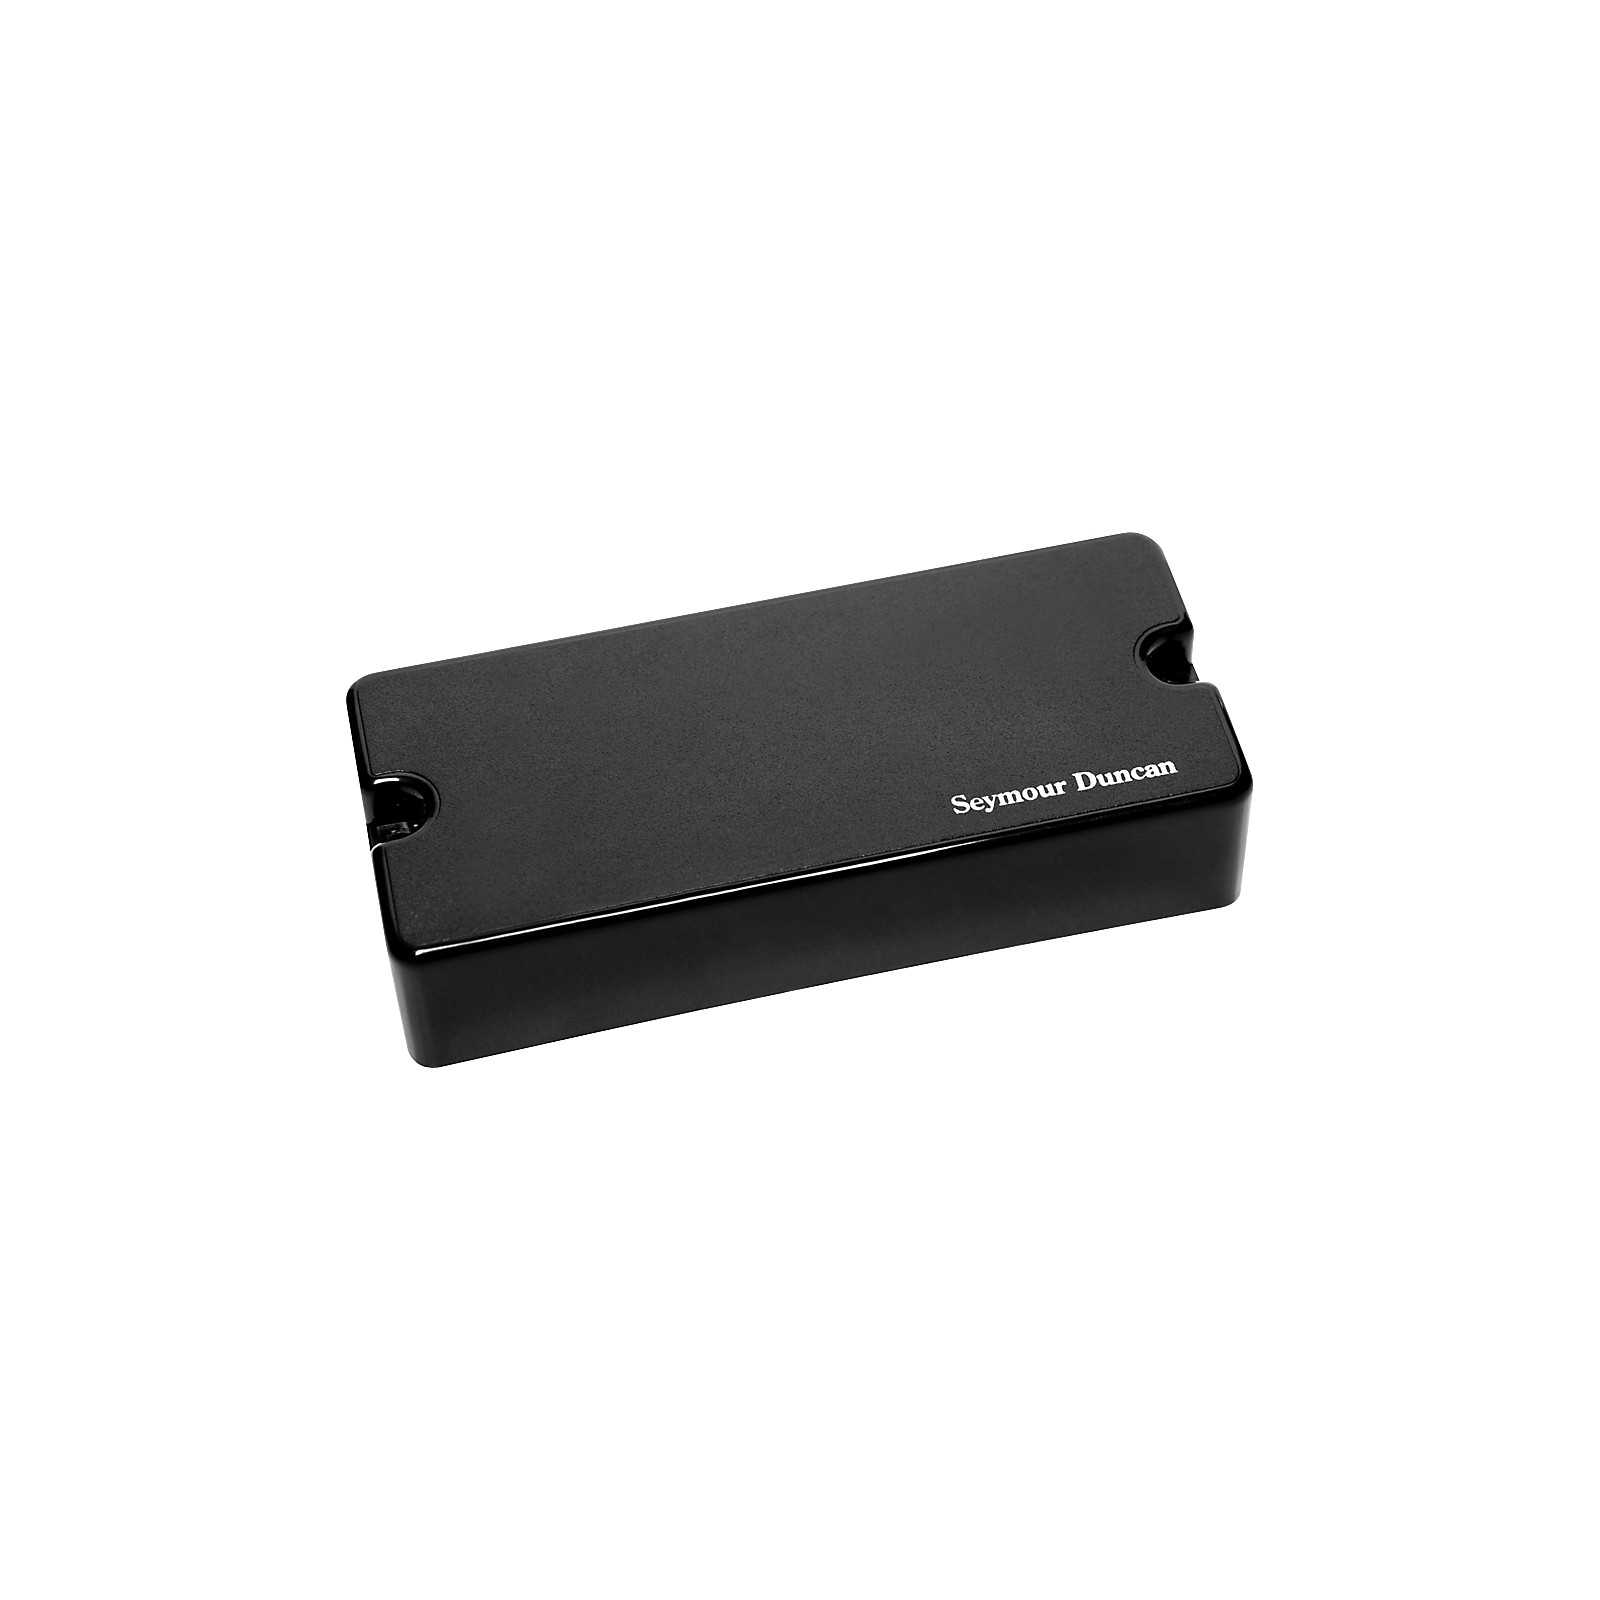 Seymour Duncan AHB-1b Blackouts 8-String Active Humbucker Bridge